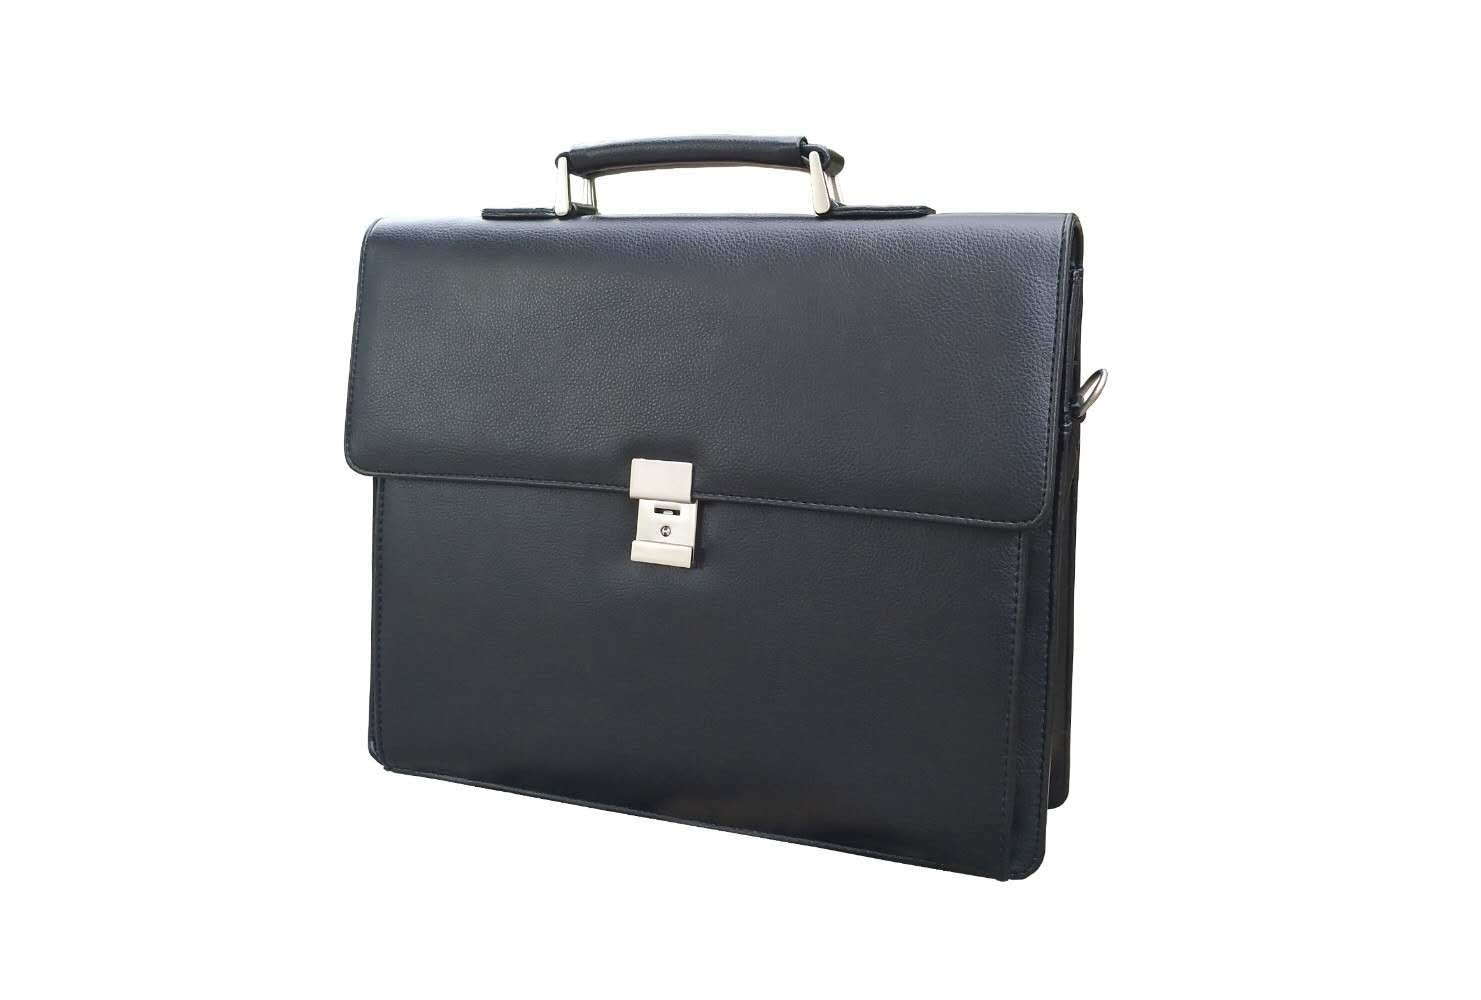 【ON SALE】Mens Leather Business Briefcases Expandable Lawyer Attache Case with Locks 15.6'' Laptop Messenger Bags for Men BLACK